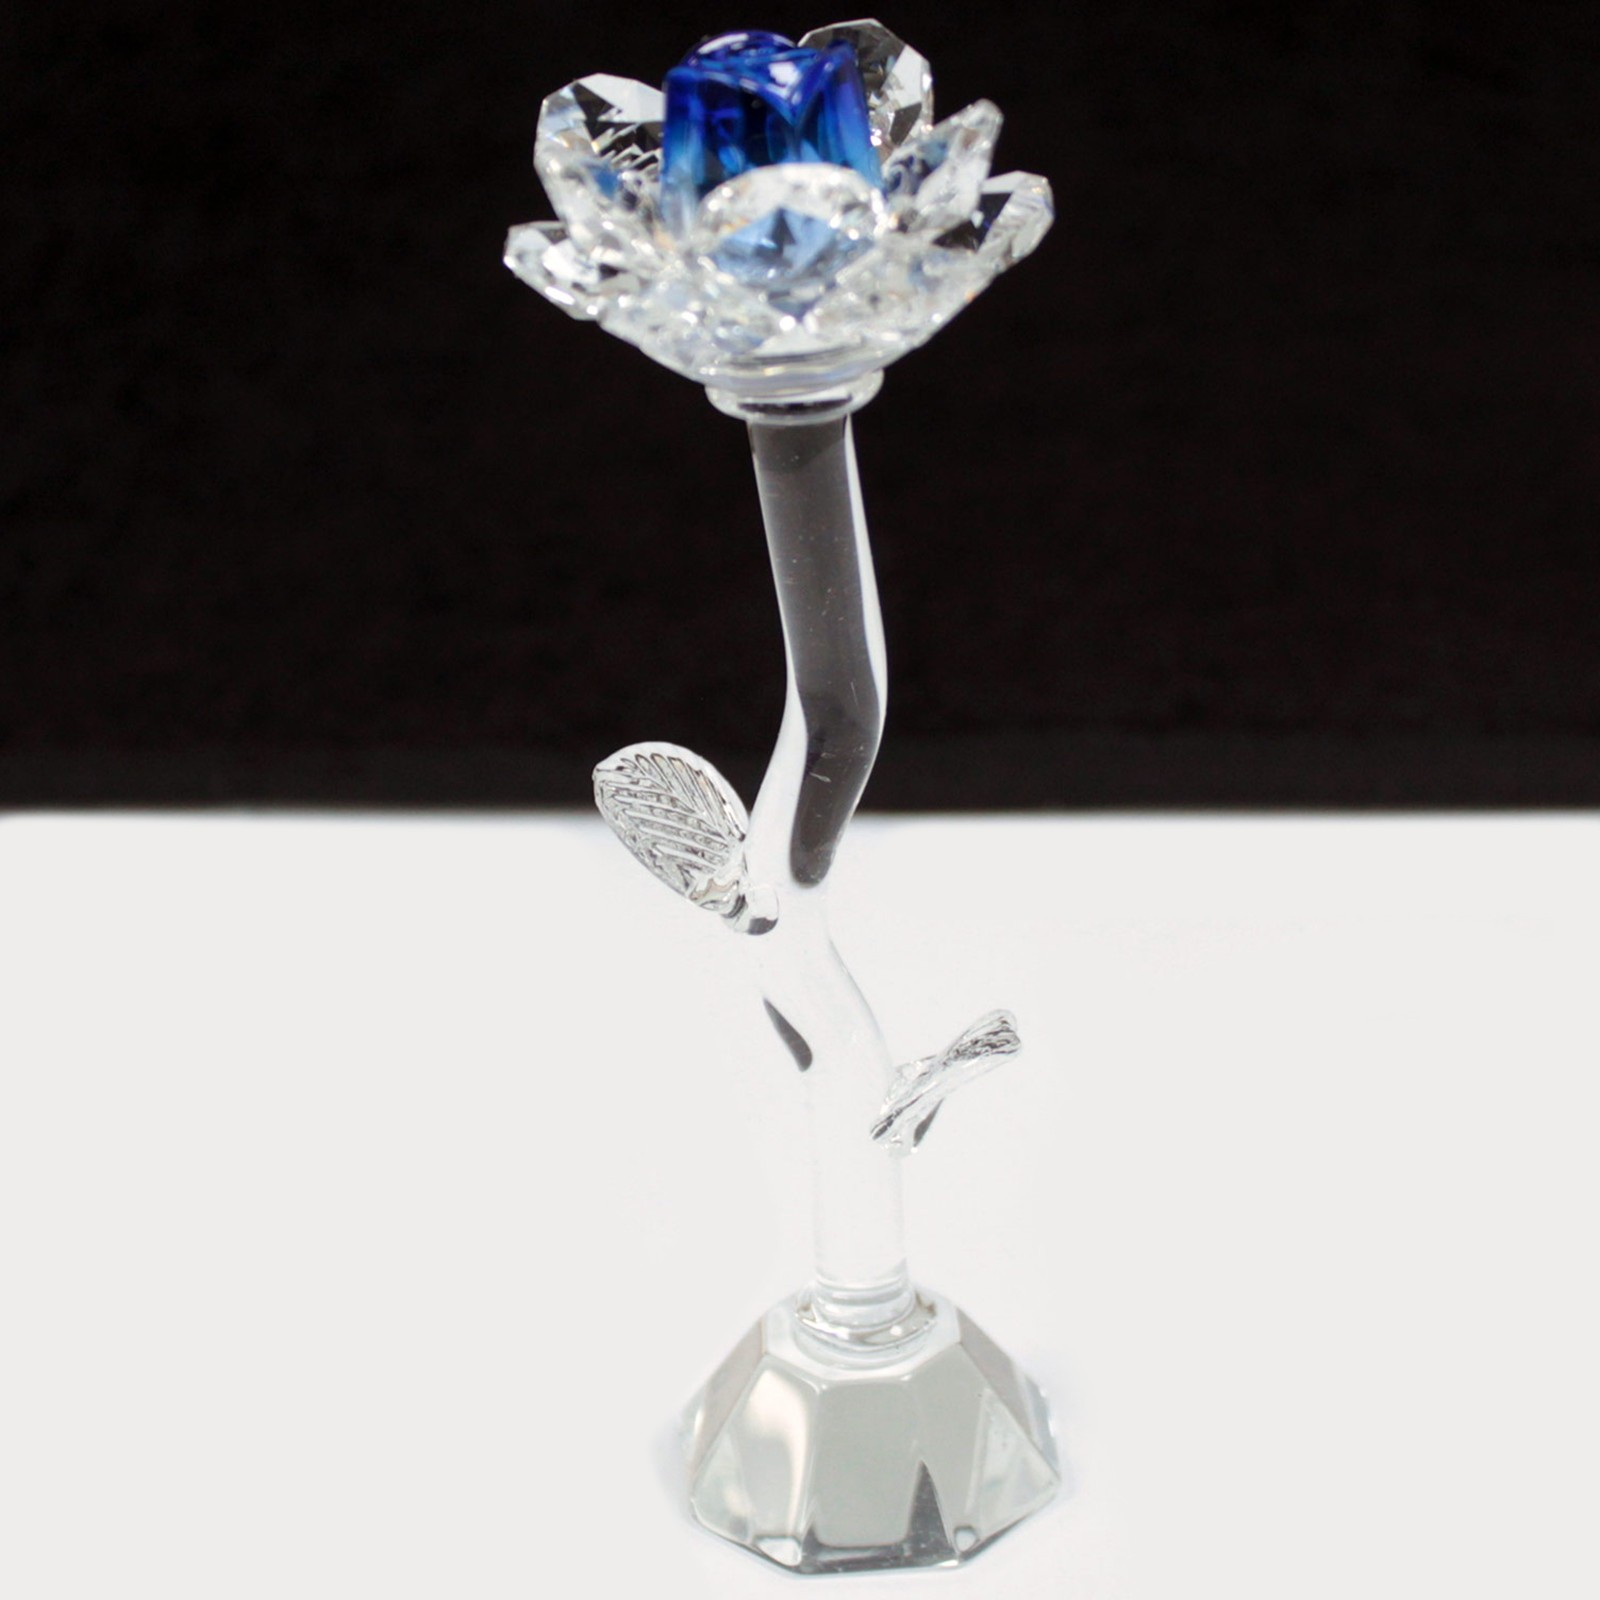 Crystal Rose - Blue - Height 140mm